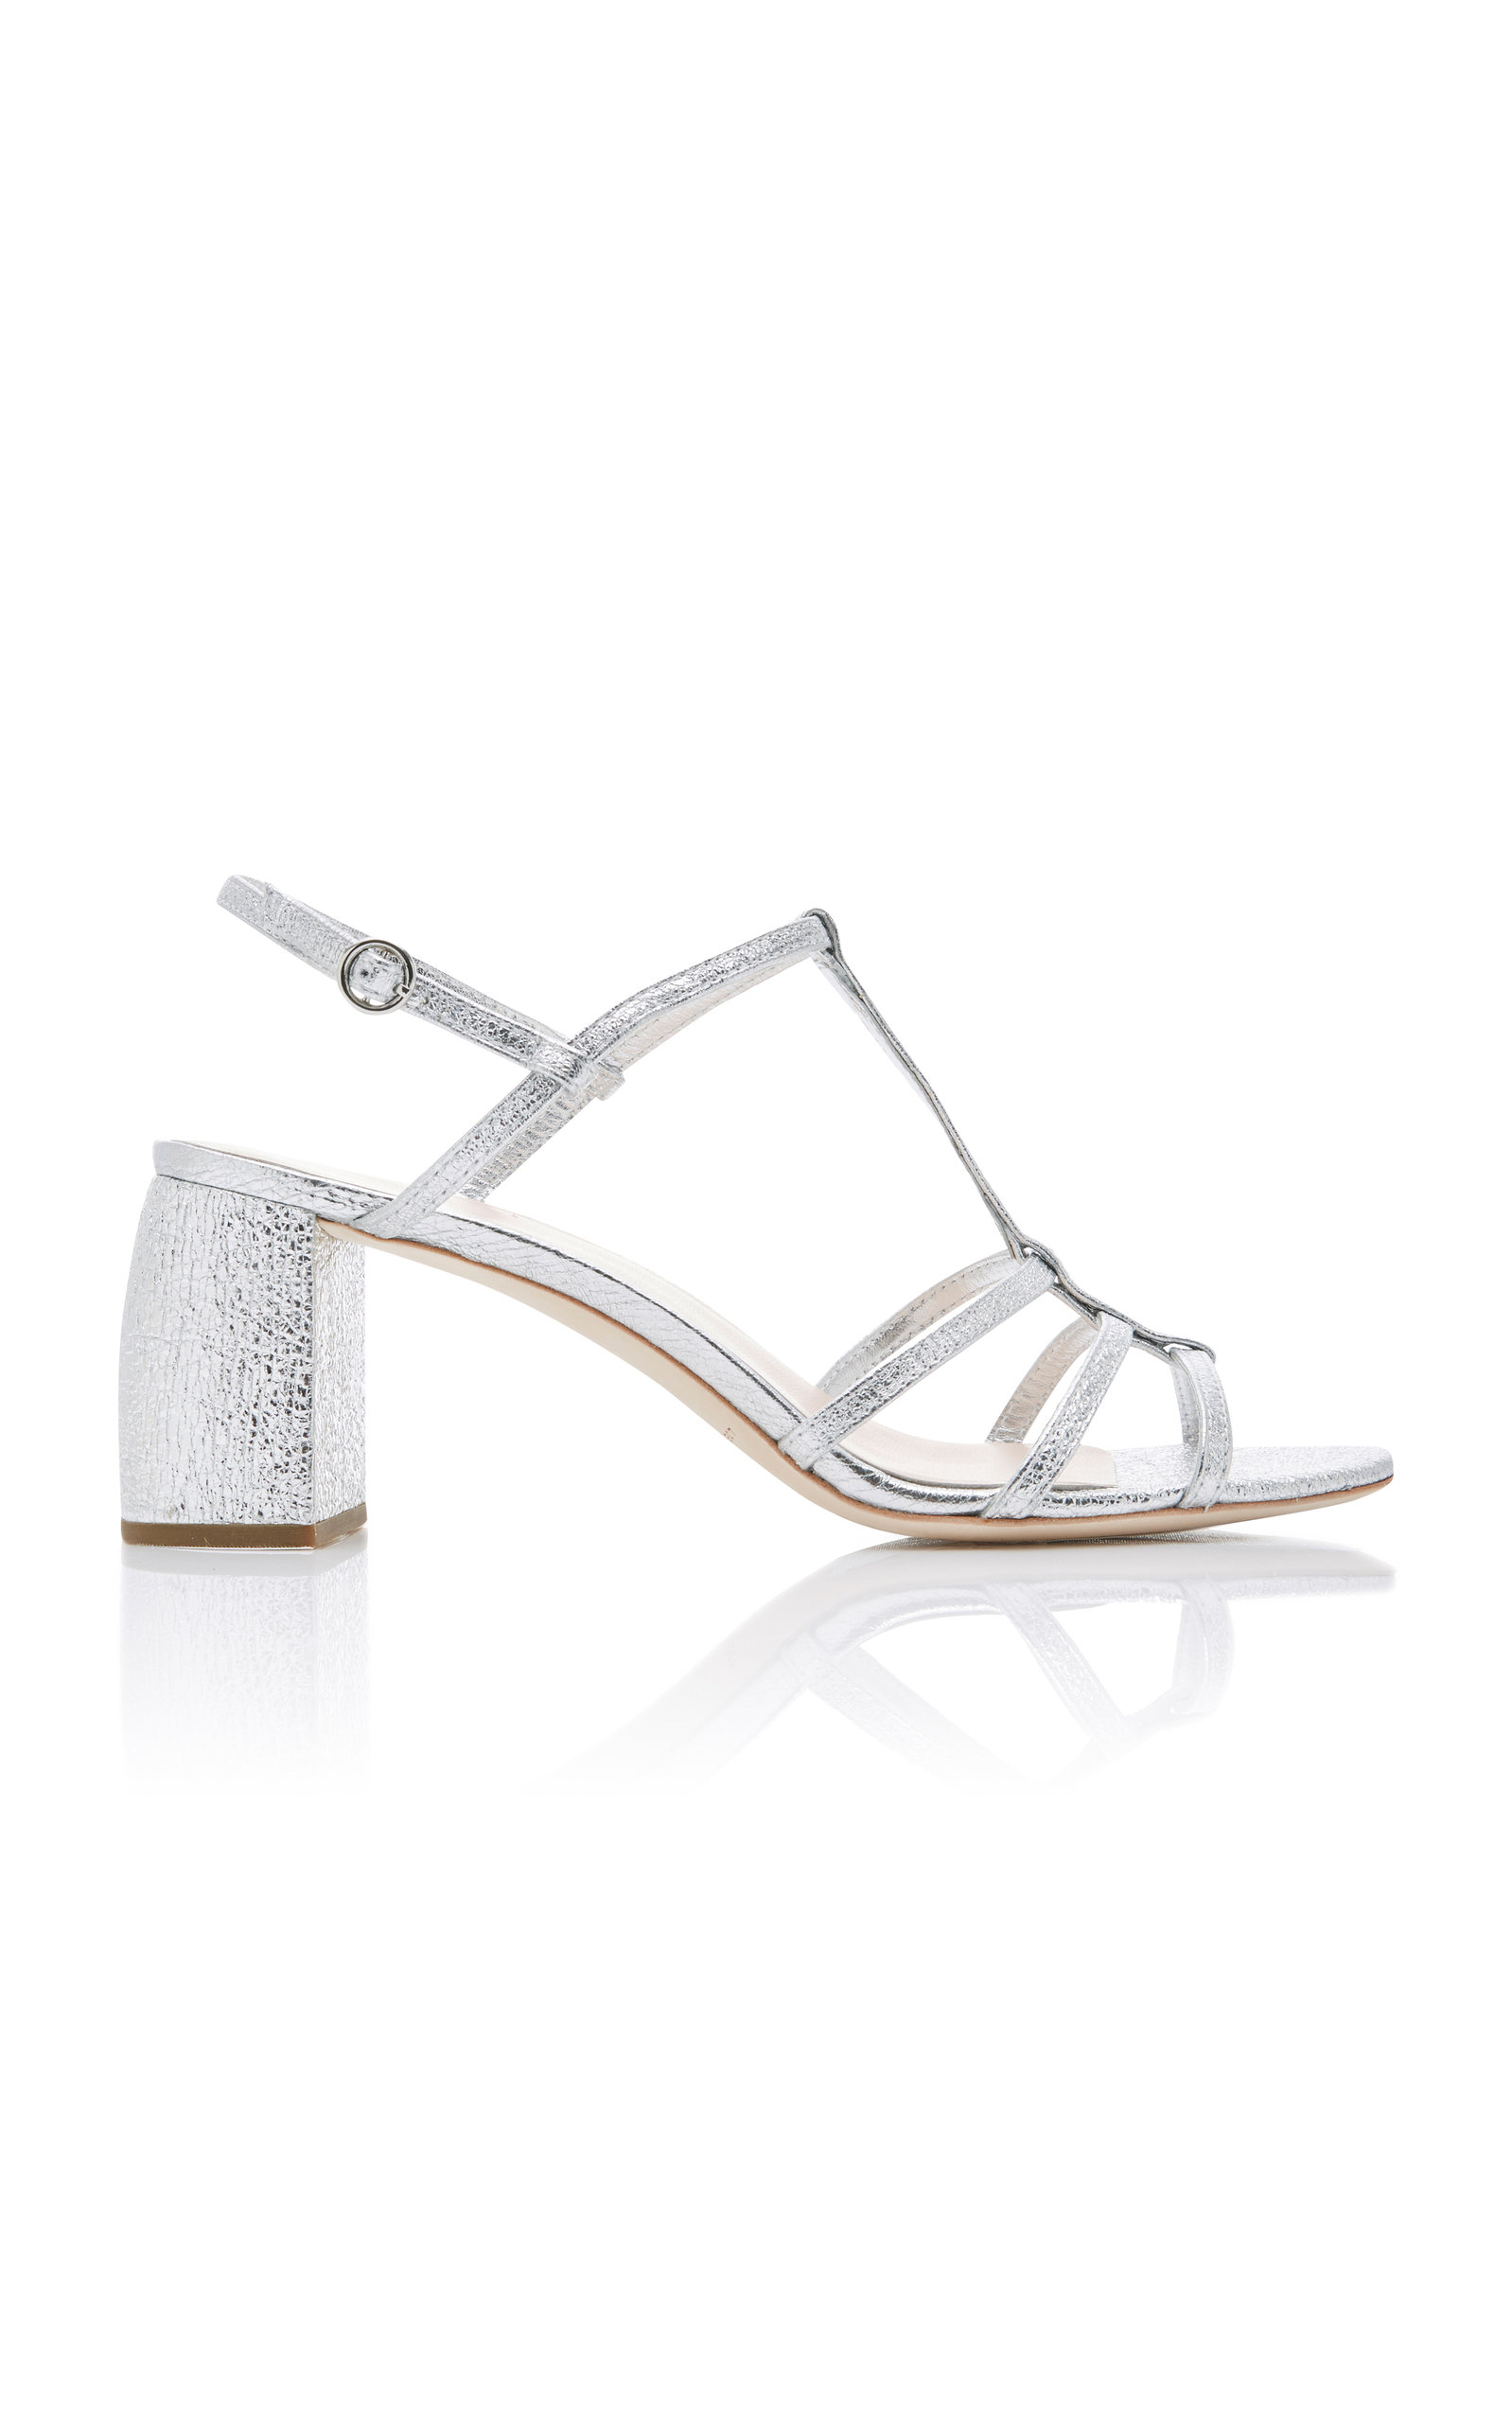 Elena Meatllic Leather Strappy Slingback Sandals, Silver